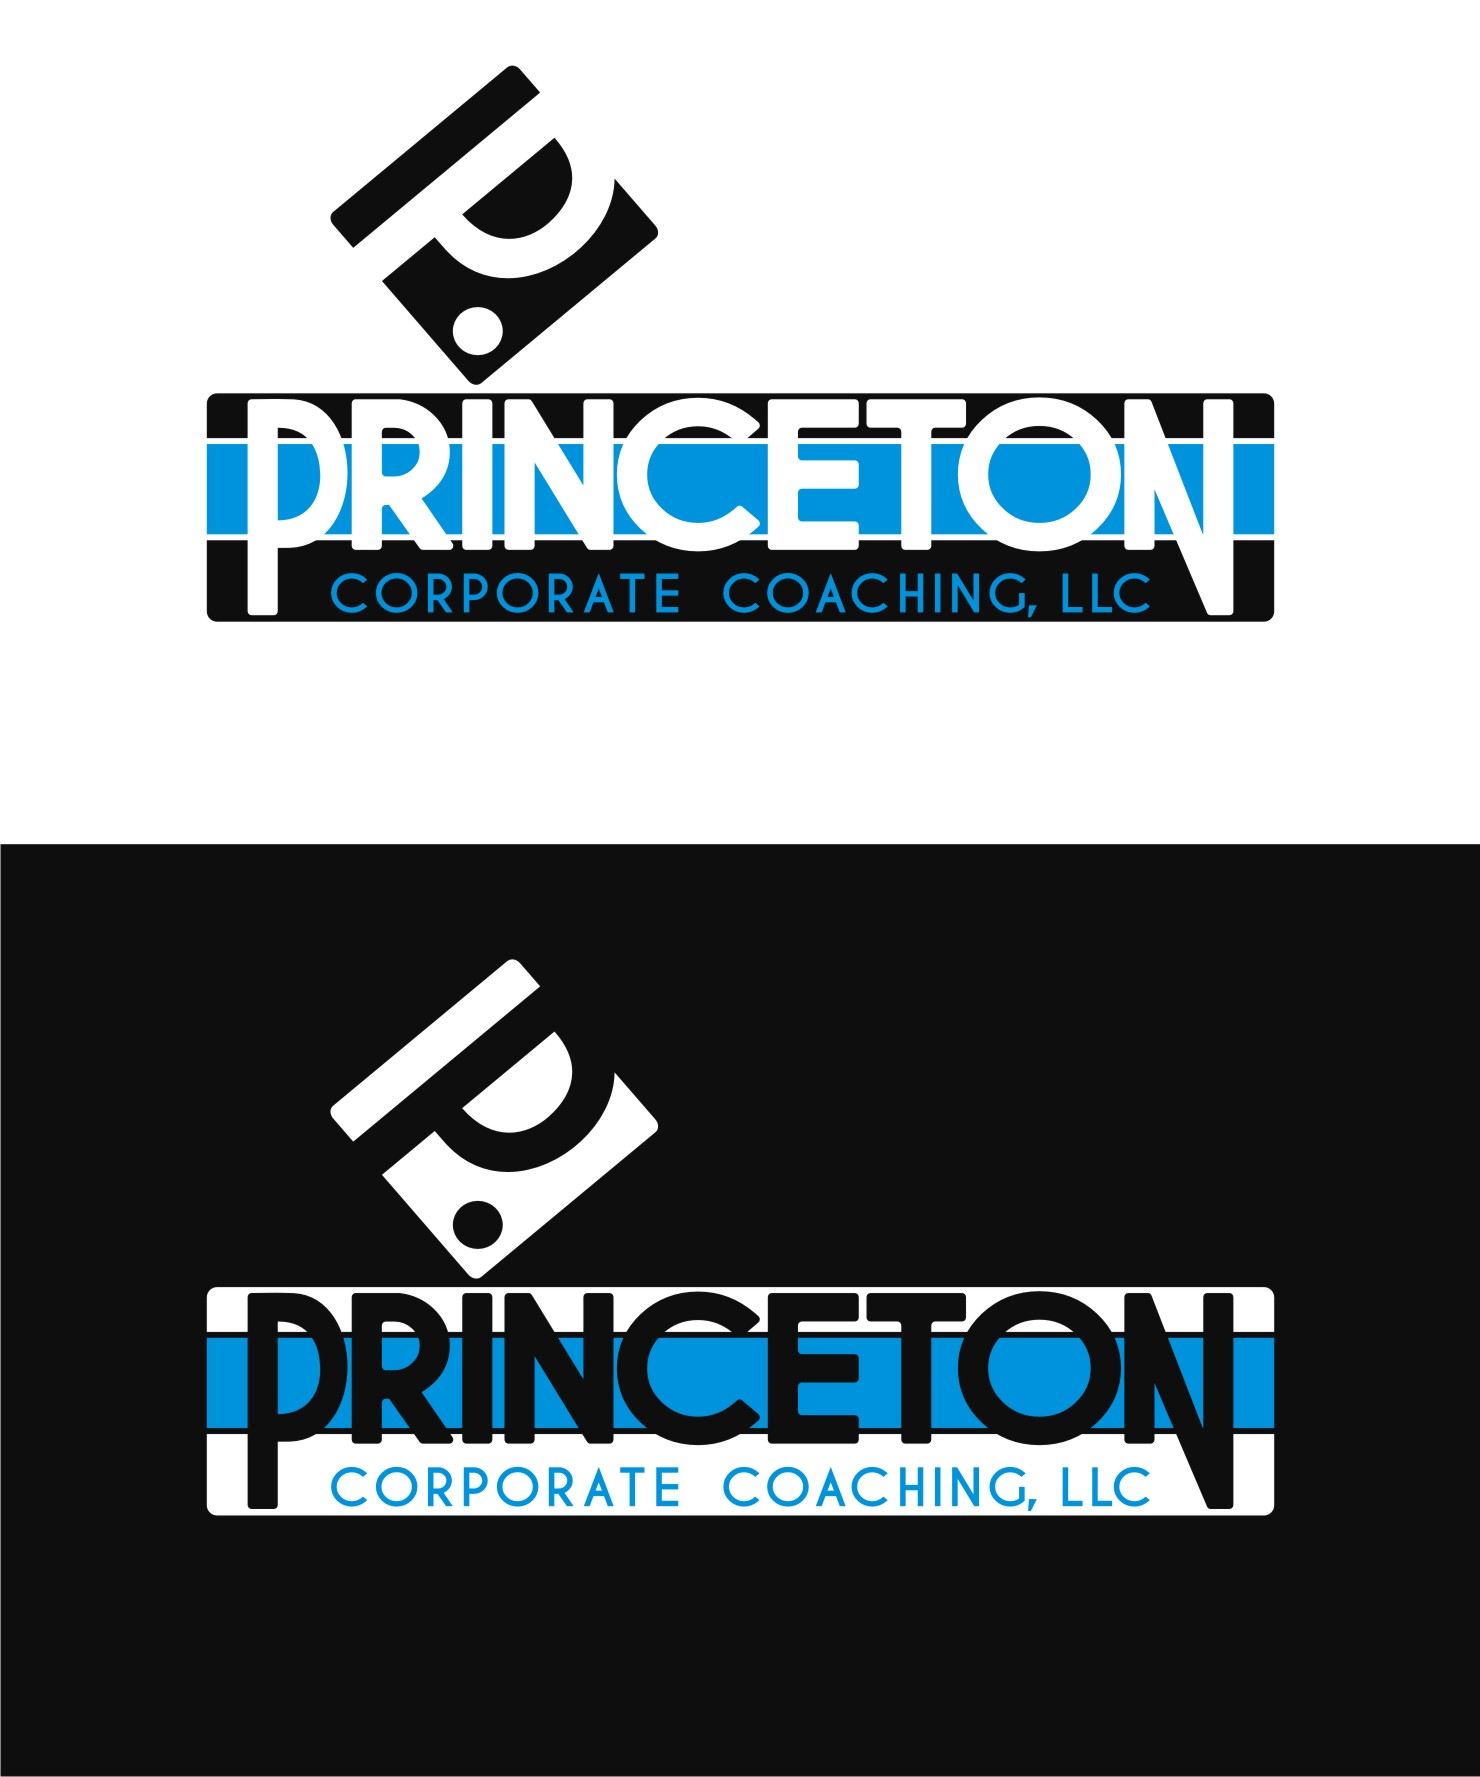 Logo Design by Private User - Entry No. 65 in the Logo Design Contest Unique Logo Design Wanted for Princeton Corporate Coaching, LLC.